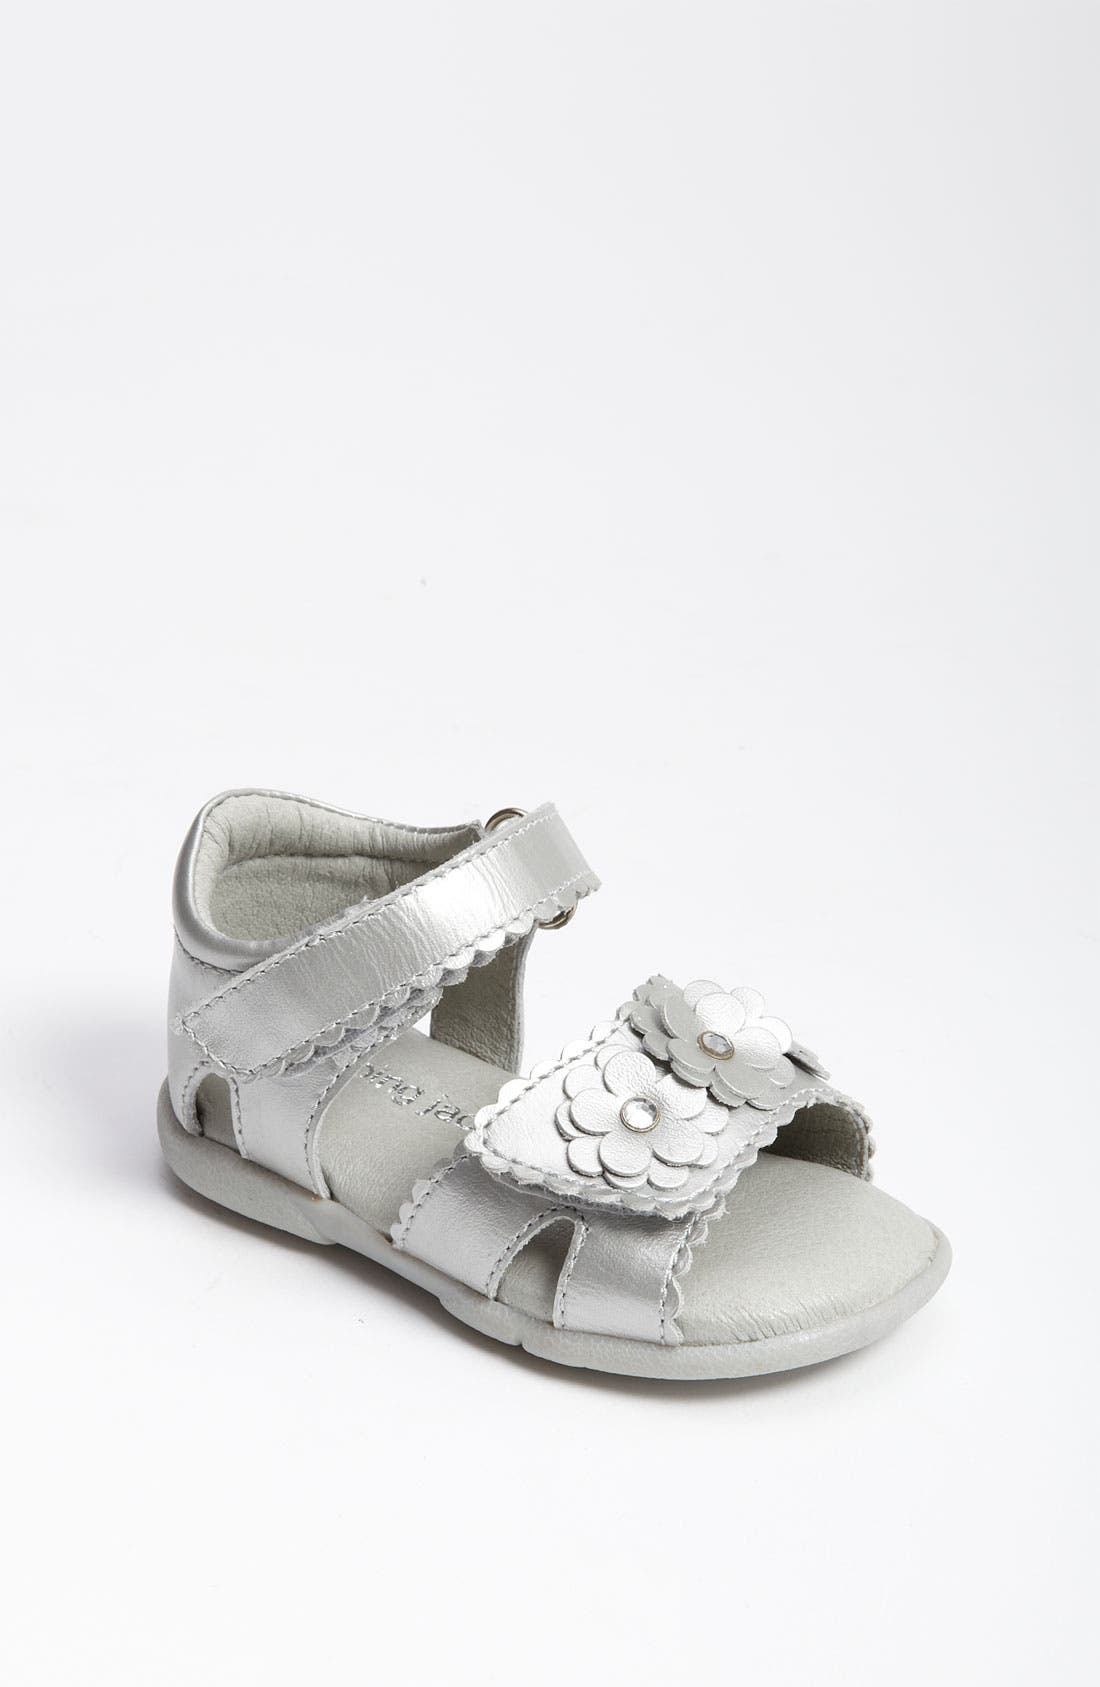 Alternate Image 1 Selected - Jumping Jacks 'Whisper' Sandal (Baby, Walker & Toddler)